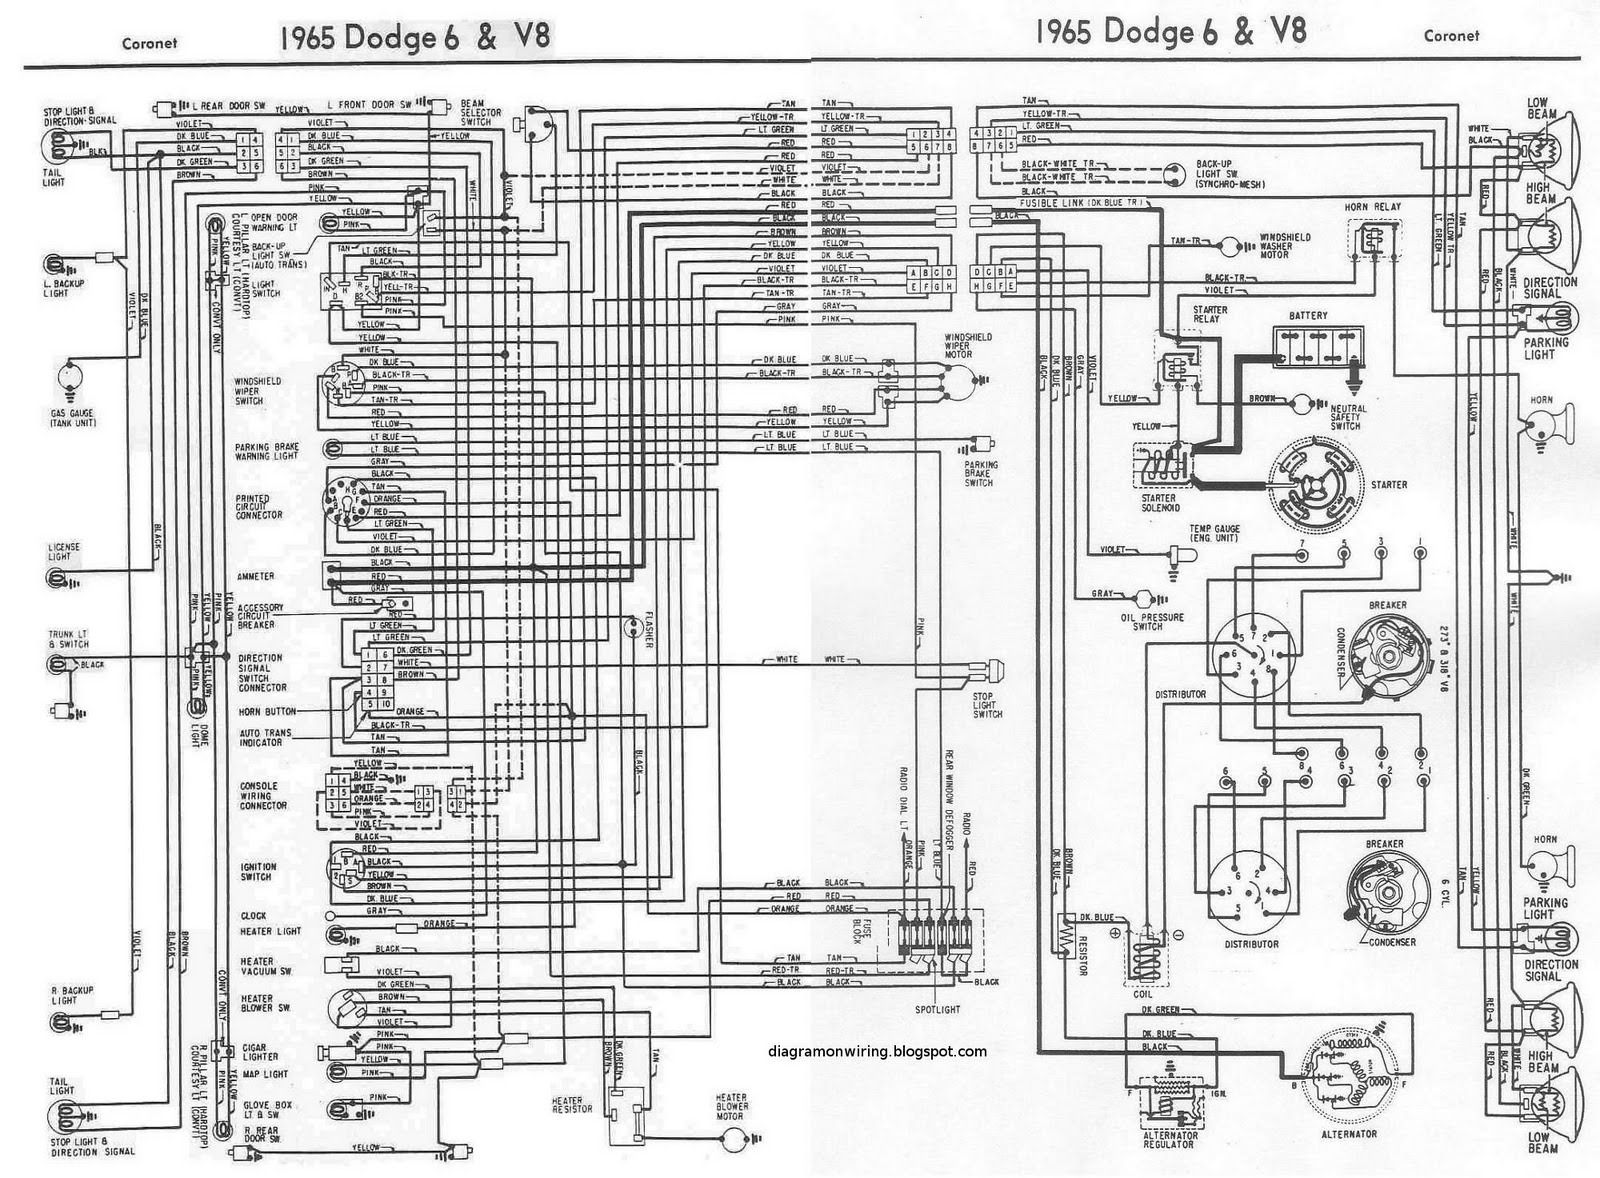 1971 Duster Wiring Diagram | Wiring Diagram on 70 charger wiring diagram, 61 impala wiring diagram, 71 cuda wiper motor, 70 cuda wiring diagram, 67 camaro wiring diagram, 68 charger wiring diagram, 1967 pontiac gto wiring diagram, 71 cuda rear suspension,